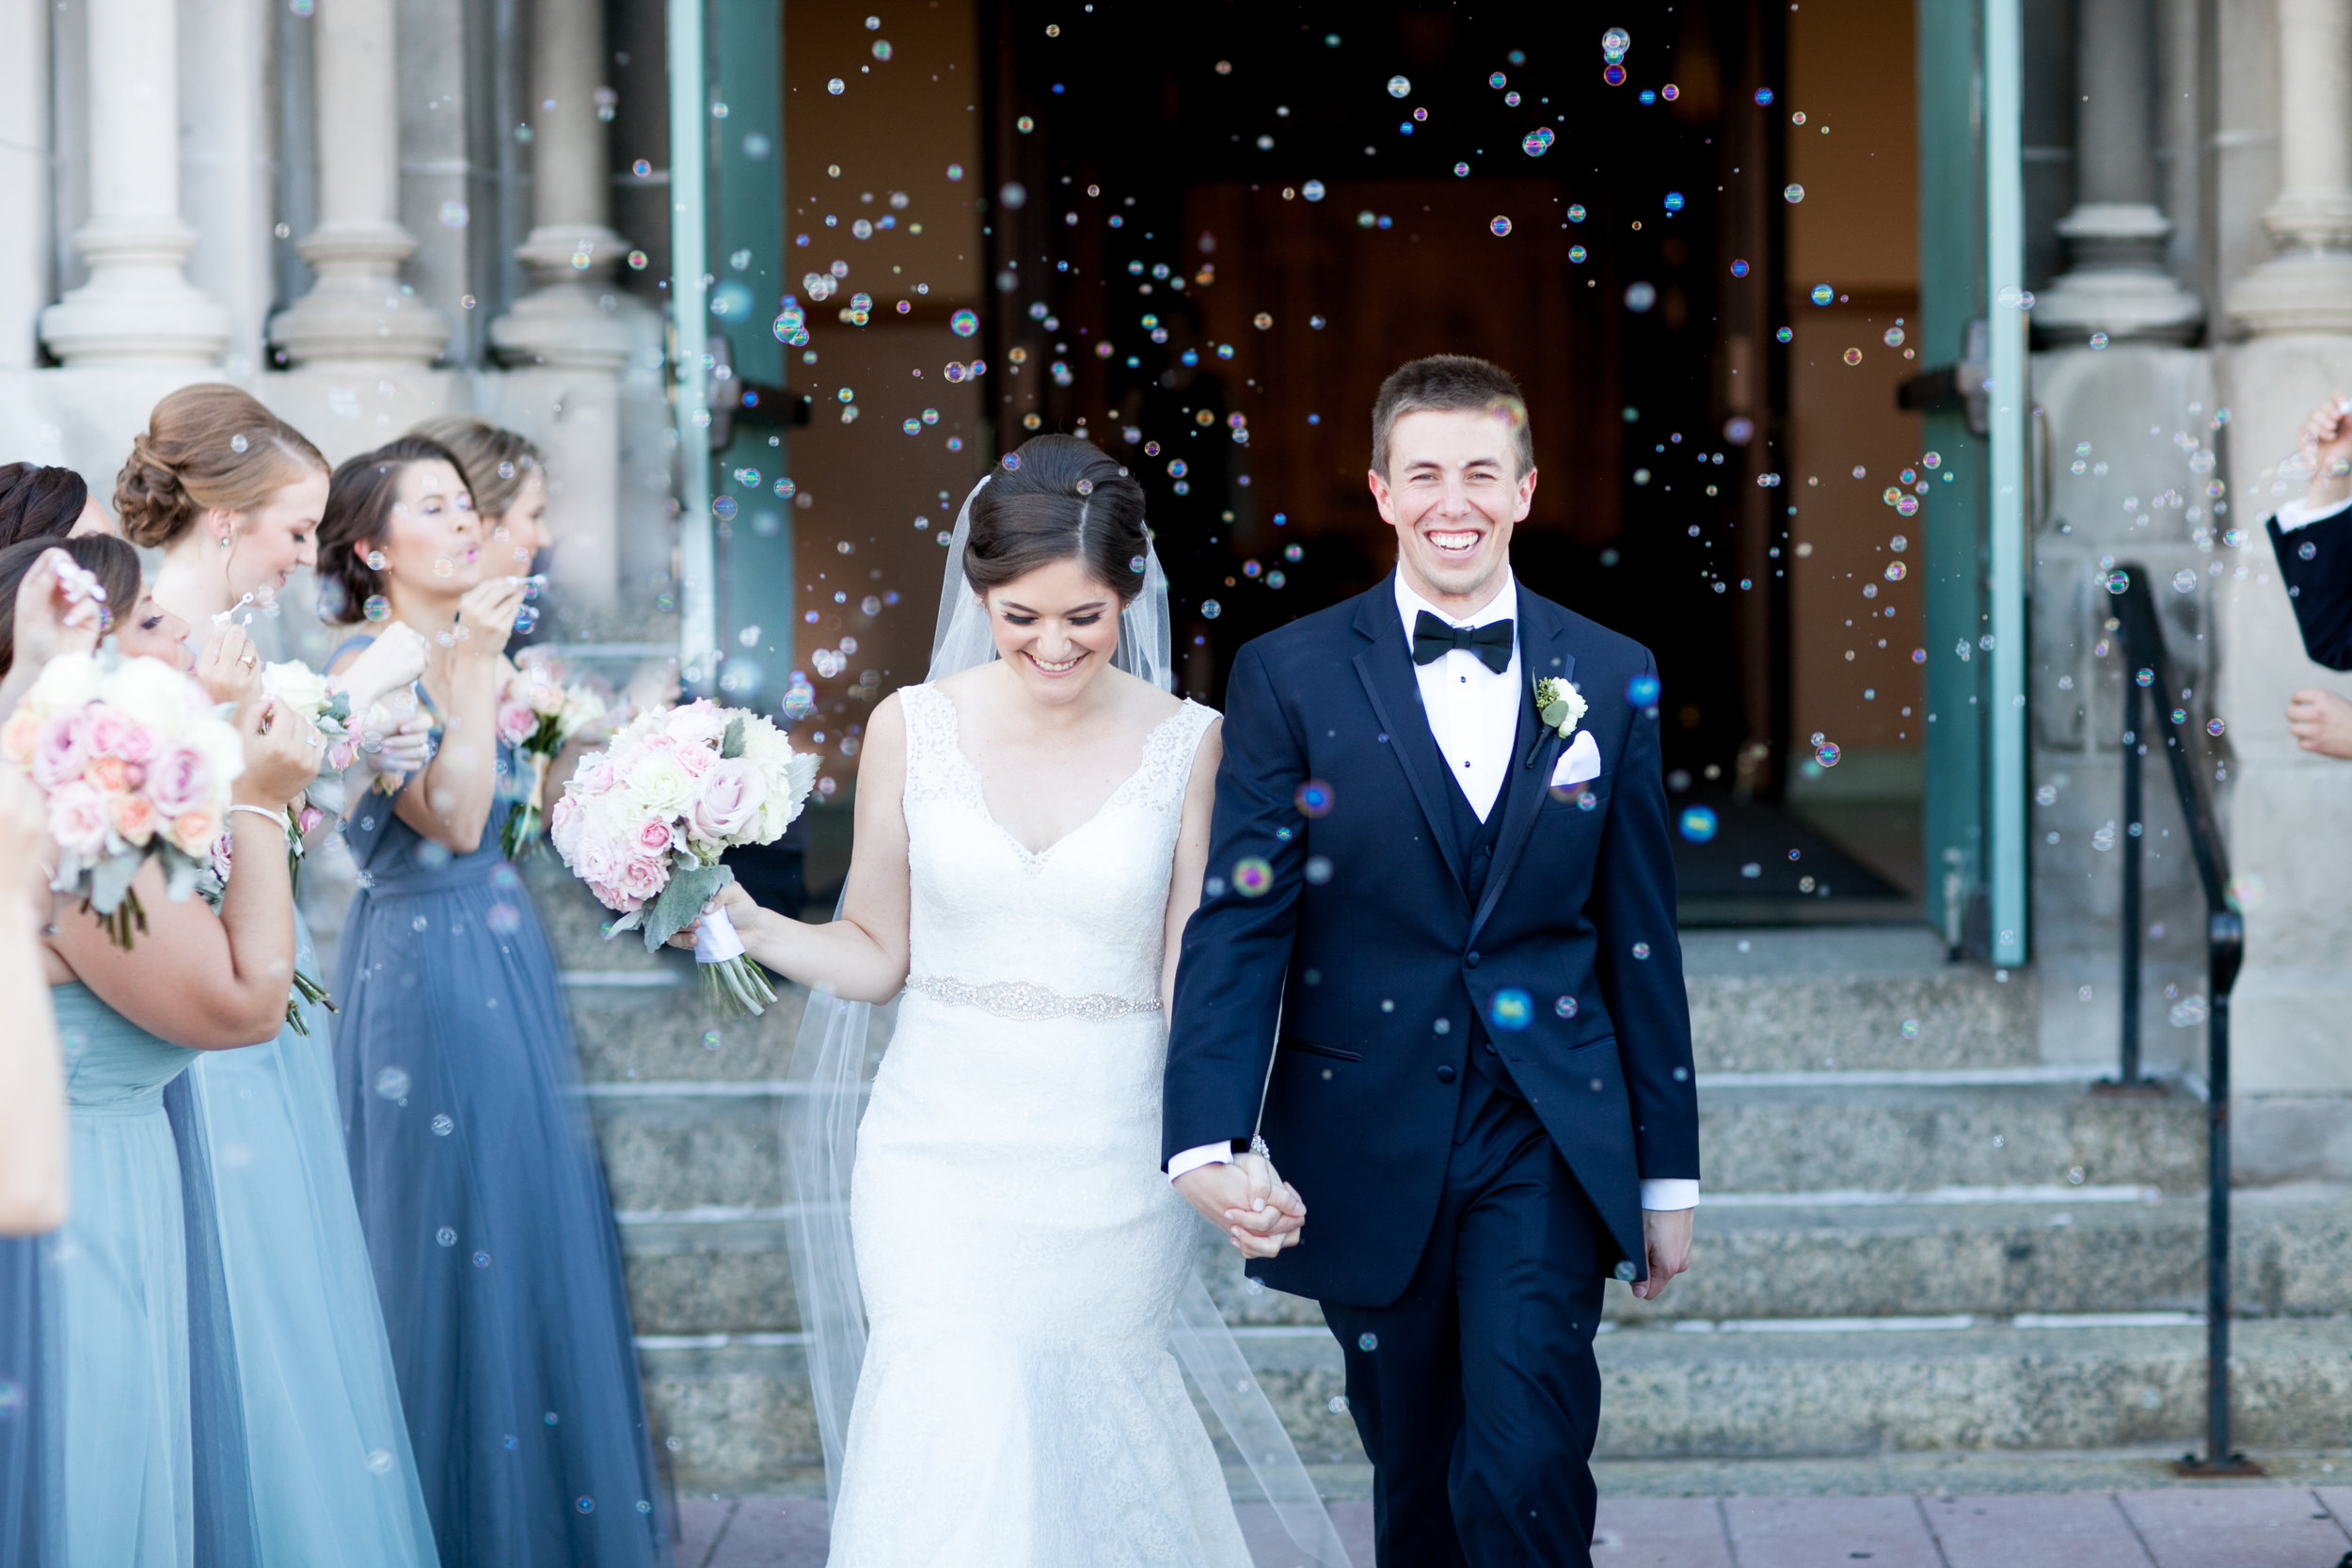 LisaDiederichPhotography_caitlin&caseywedding_blog-34.jpg